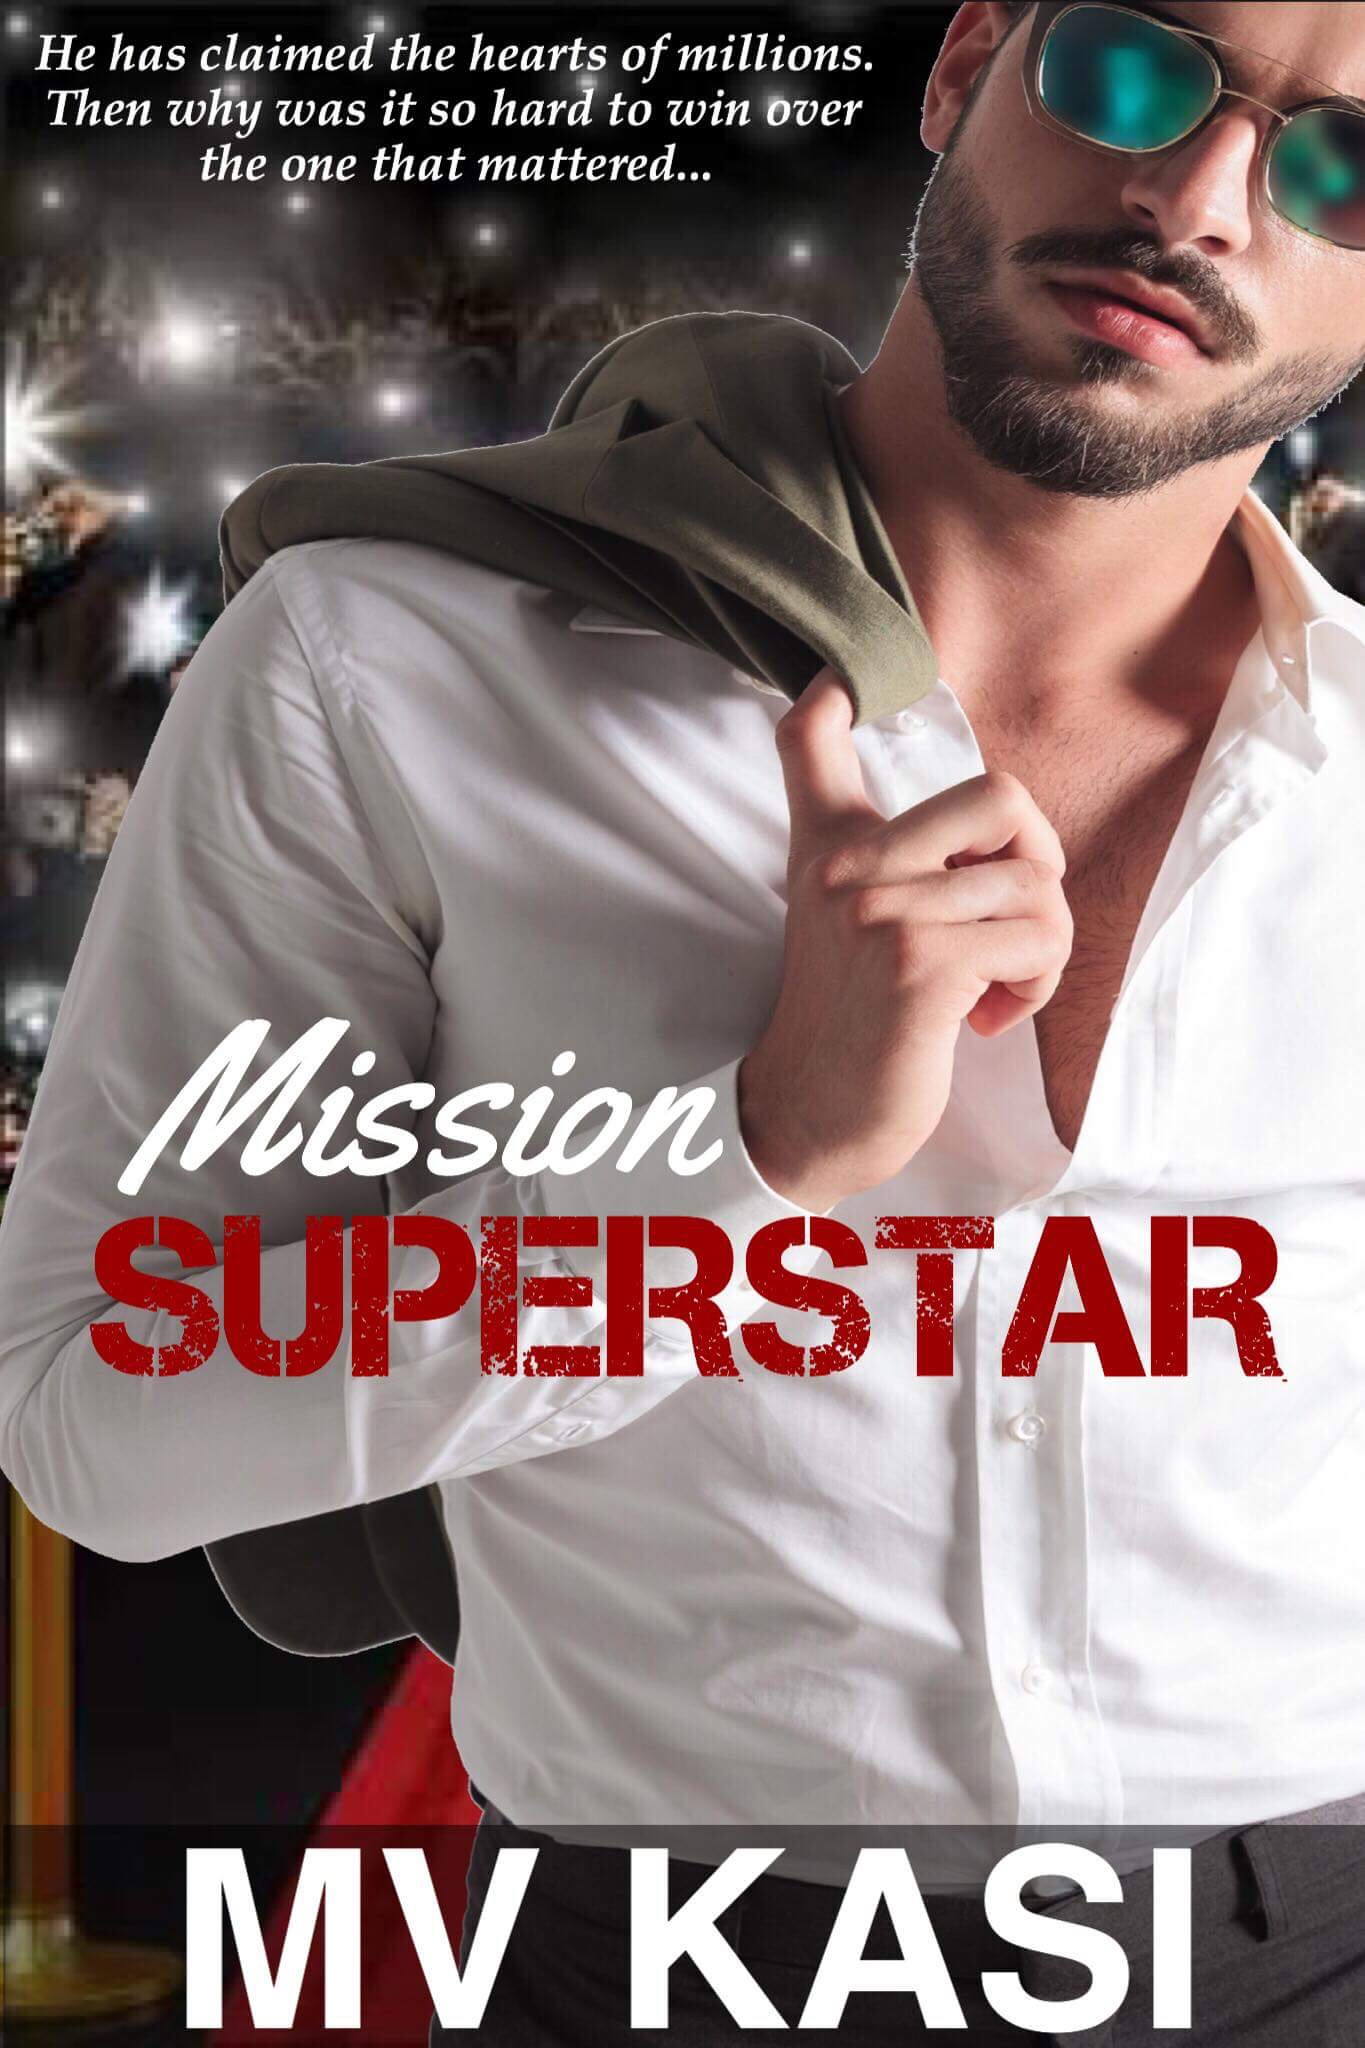 Mission Superstar